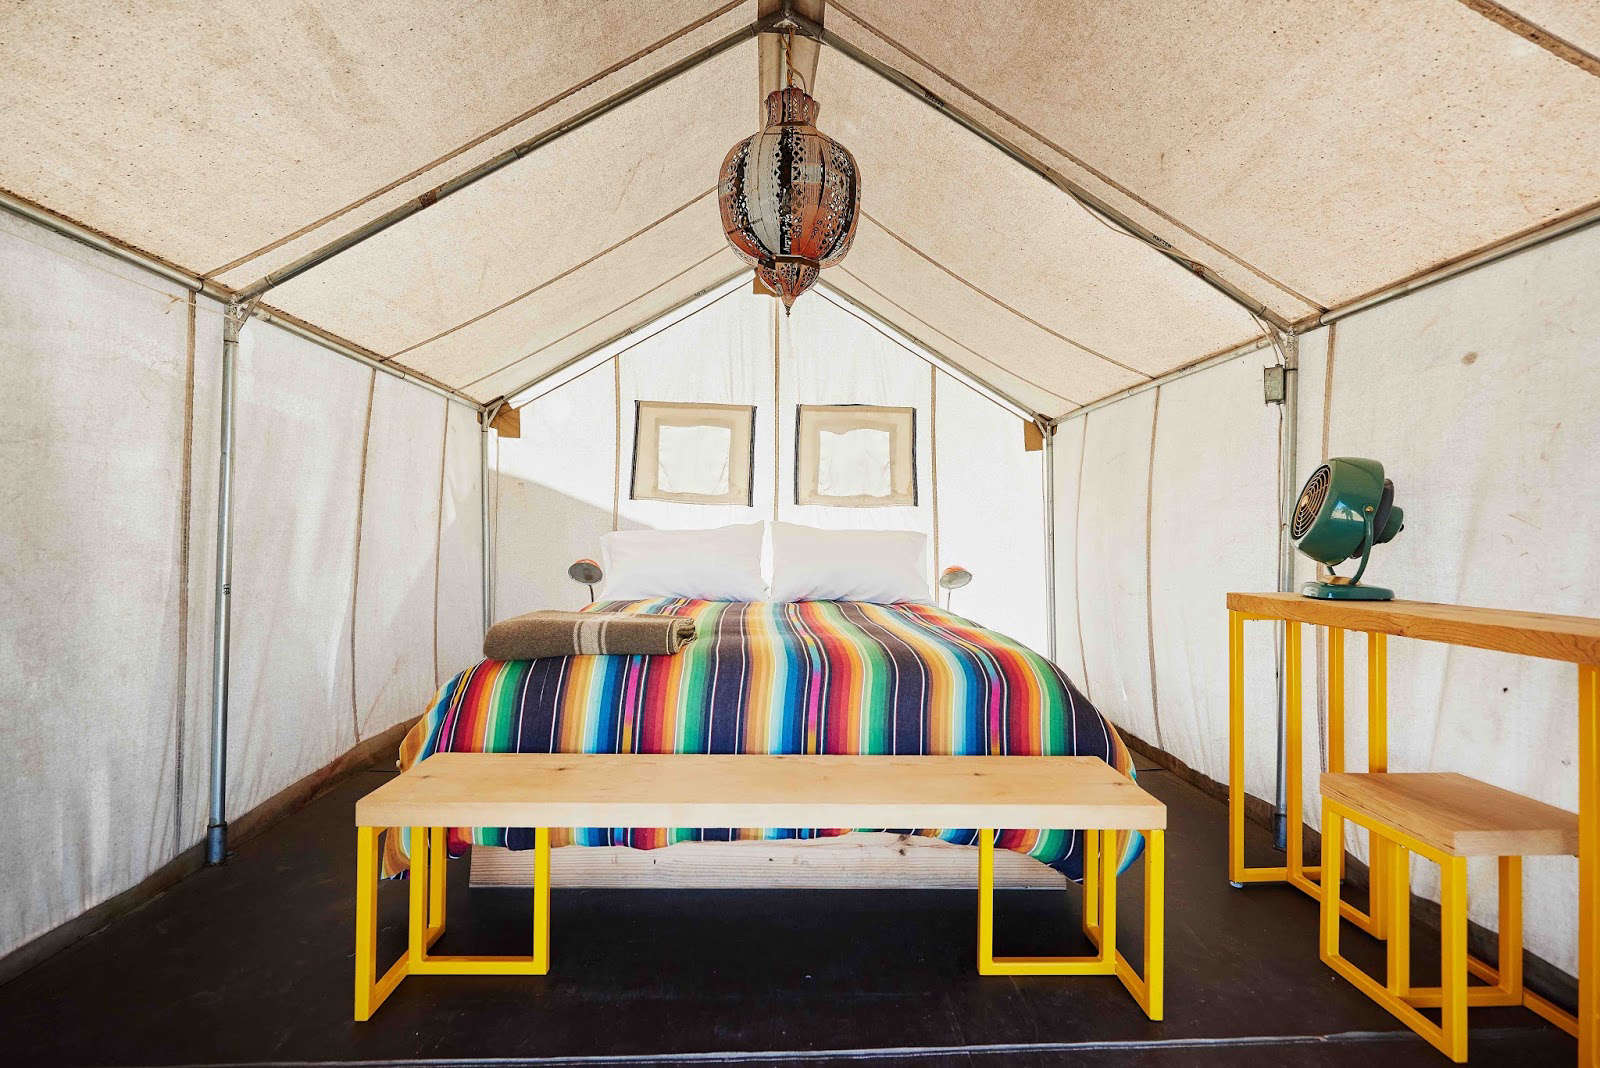 Above: Another Tent Interior With A Rainbow Duvet And Yellow Furniture.  Photograph From El Cosmico.